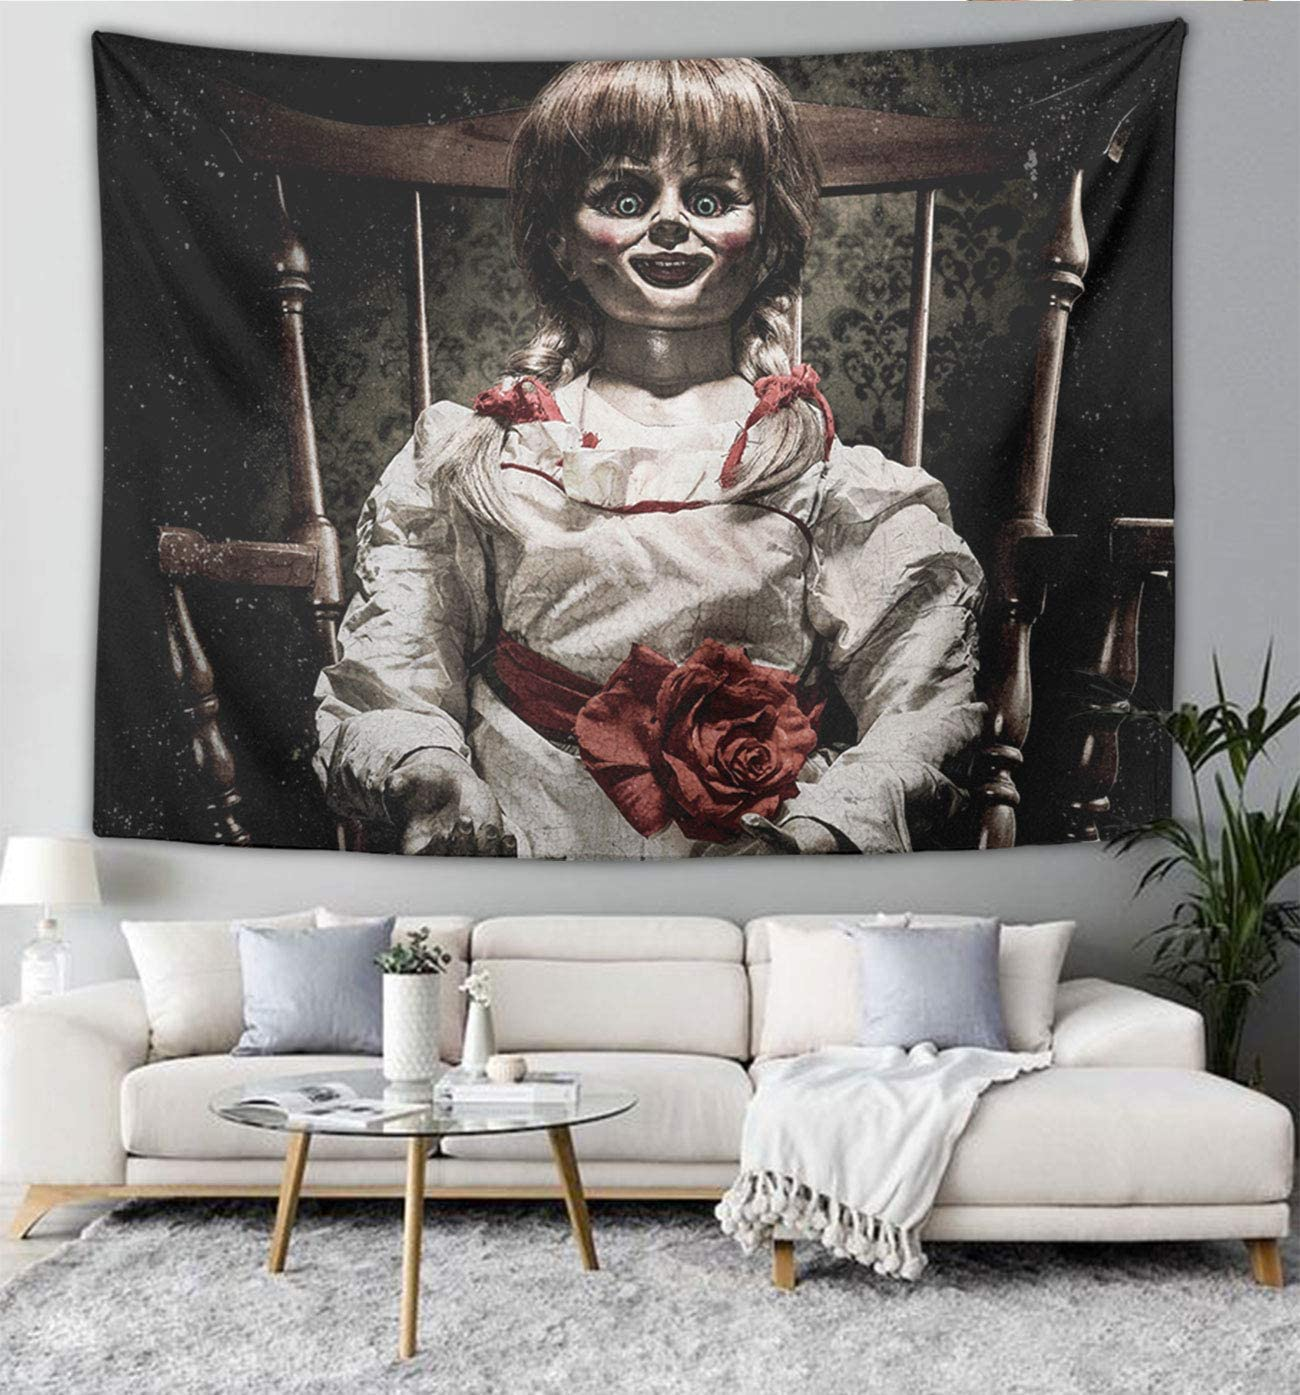 NiYoung Premium Tapestry Wall Hanging Scary Horror Girl Doll Black Wall Decor Mandala Tapestries Beach Blanket Window Curtain Picnic Mat Large Tableclothss 60 x 80 Inches